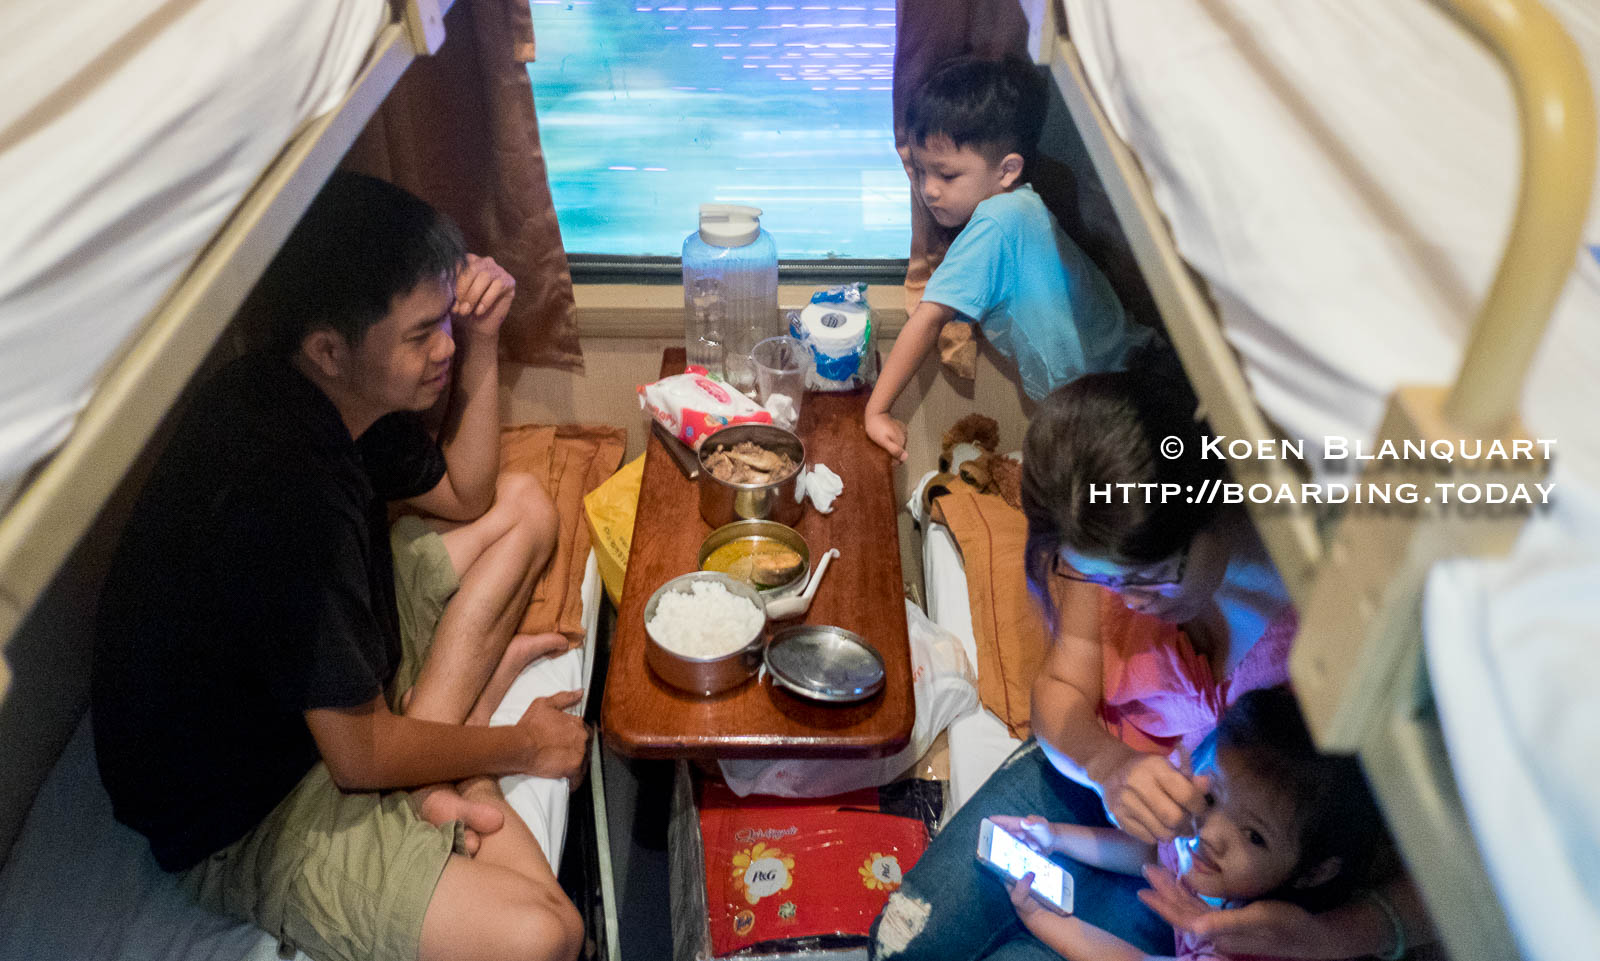 Bin and his family enjoying rice and chicken on the train between Saigon and Hanoi